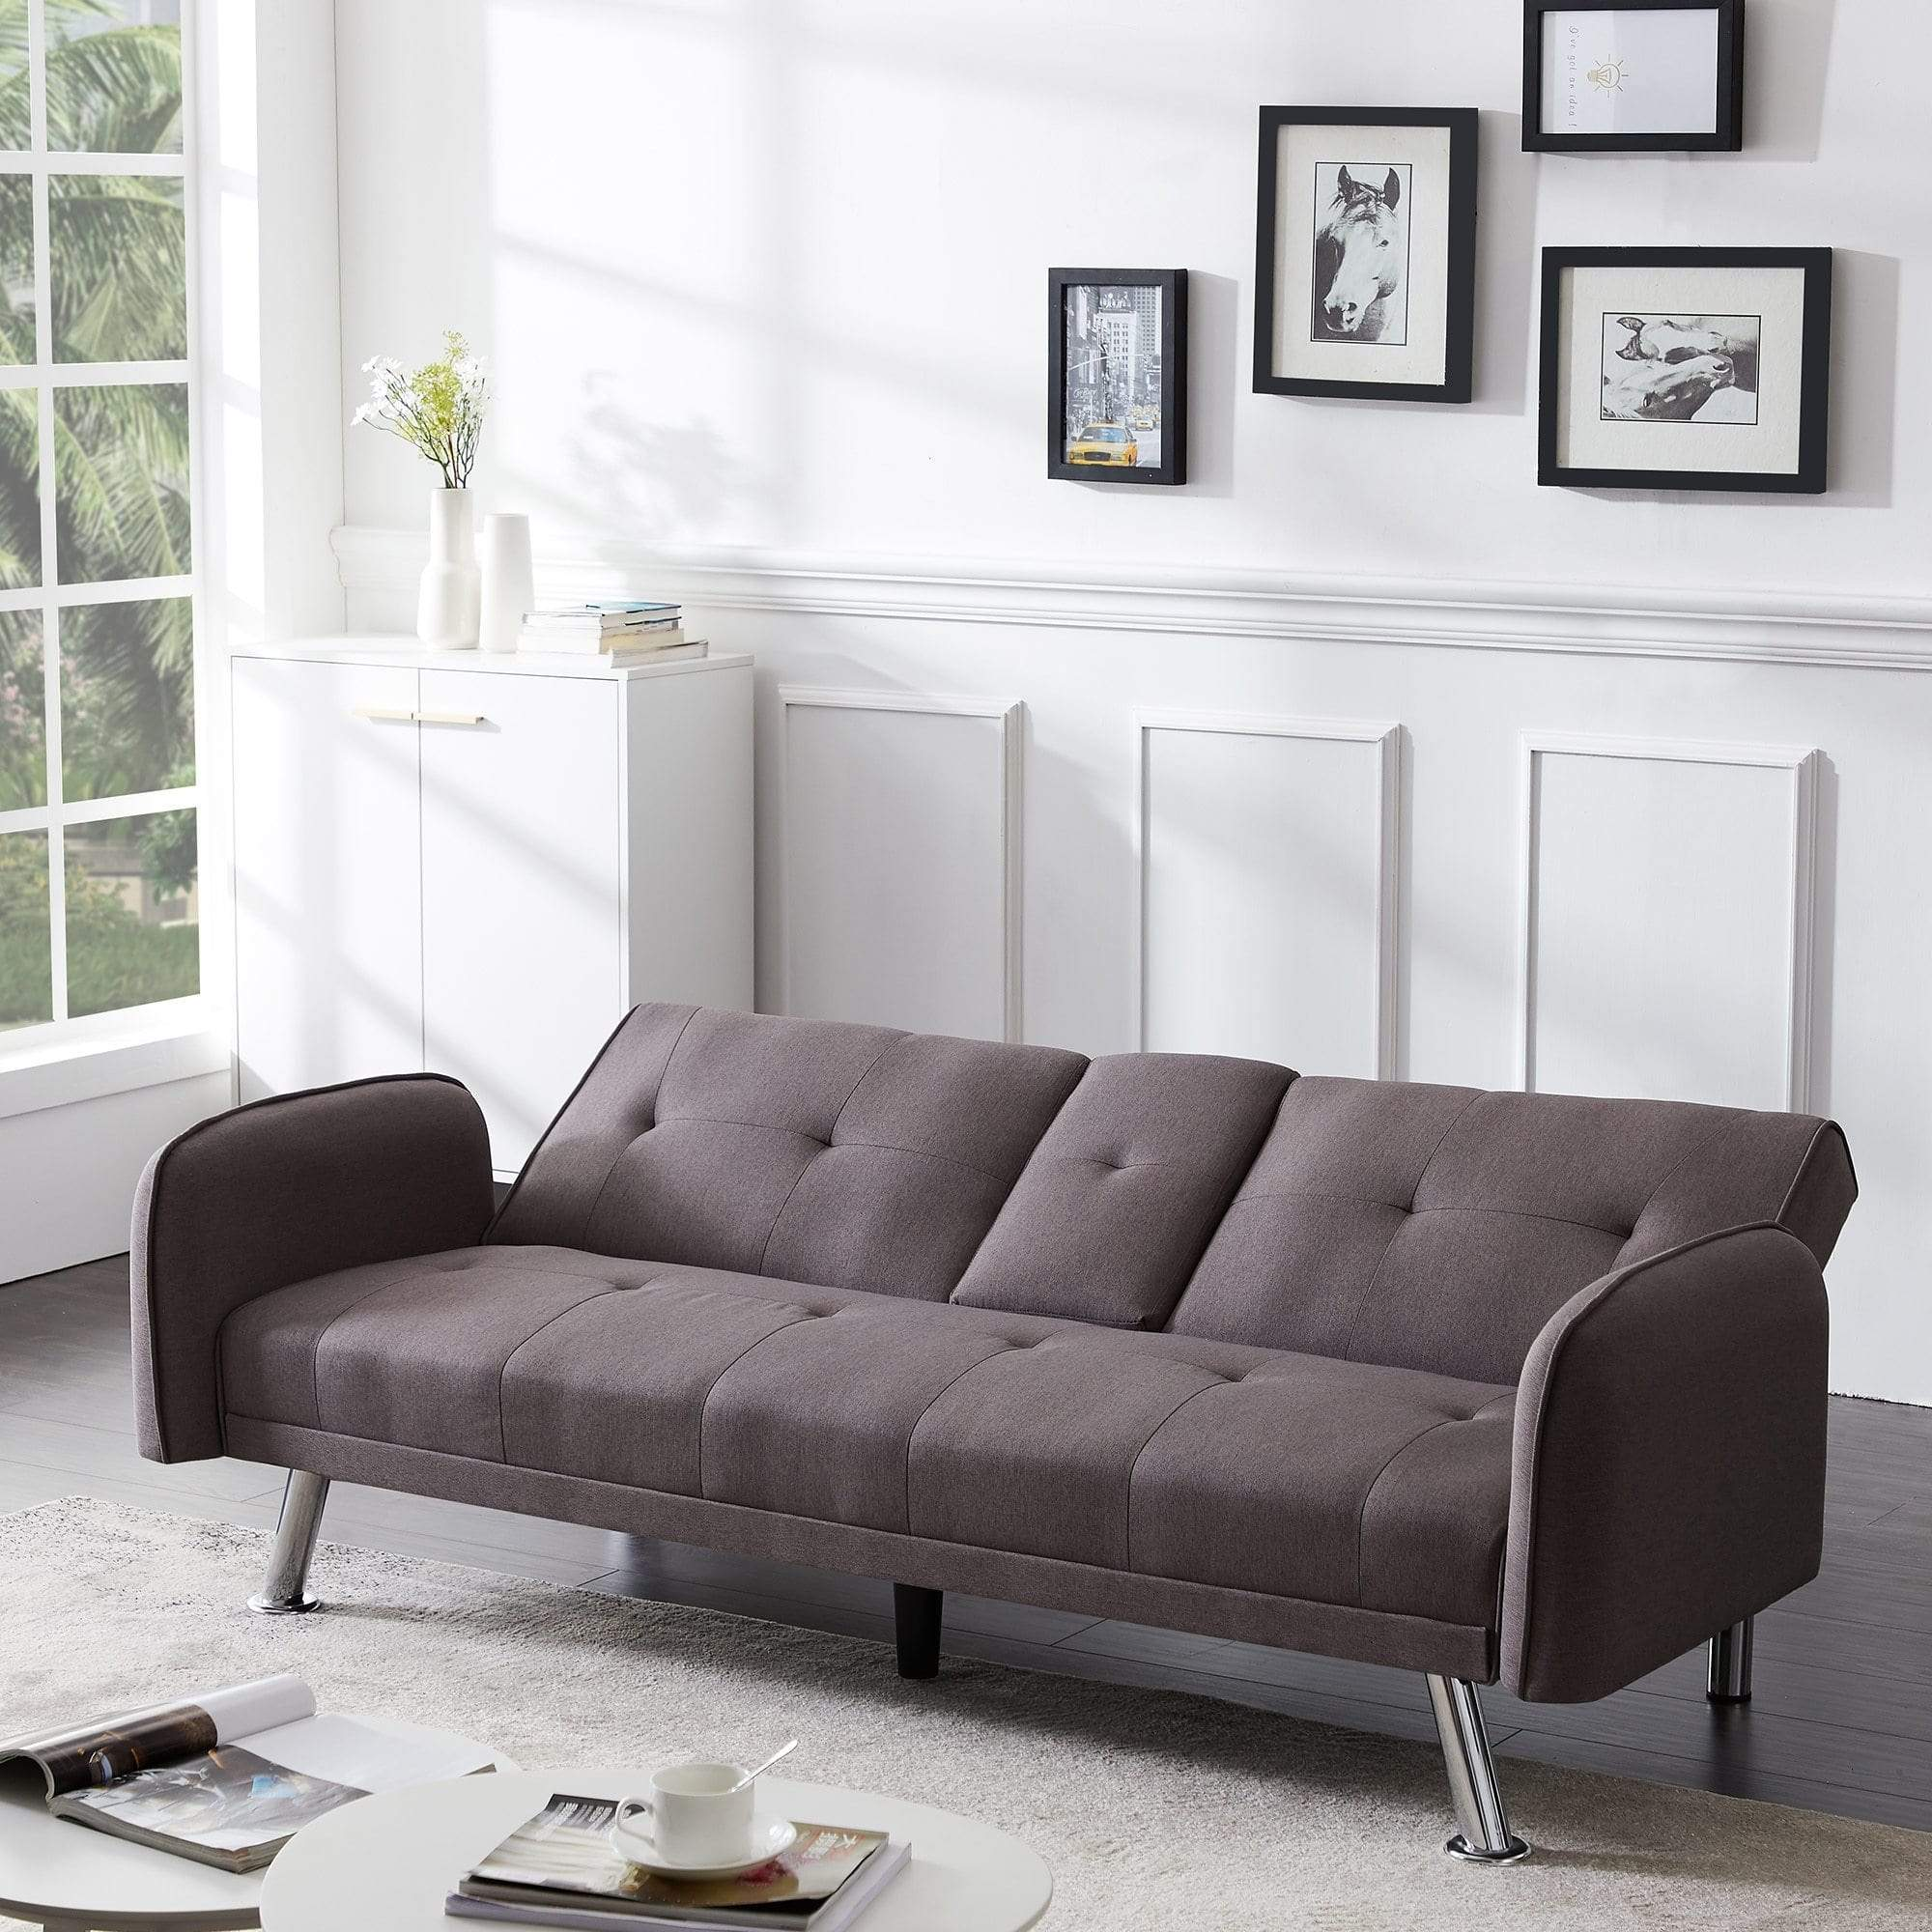 Brown Sofa Bed with Cupholders | sofa bed | movable armrests | convertible sofa | futon sofa | living room furniture | sofa with cup holder | sofa | furniture